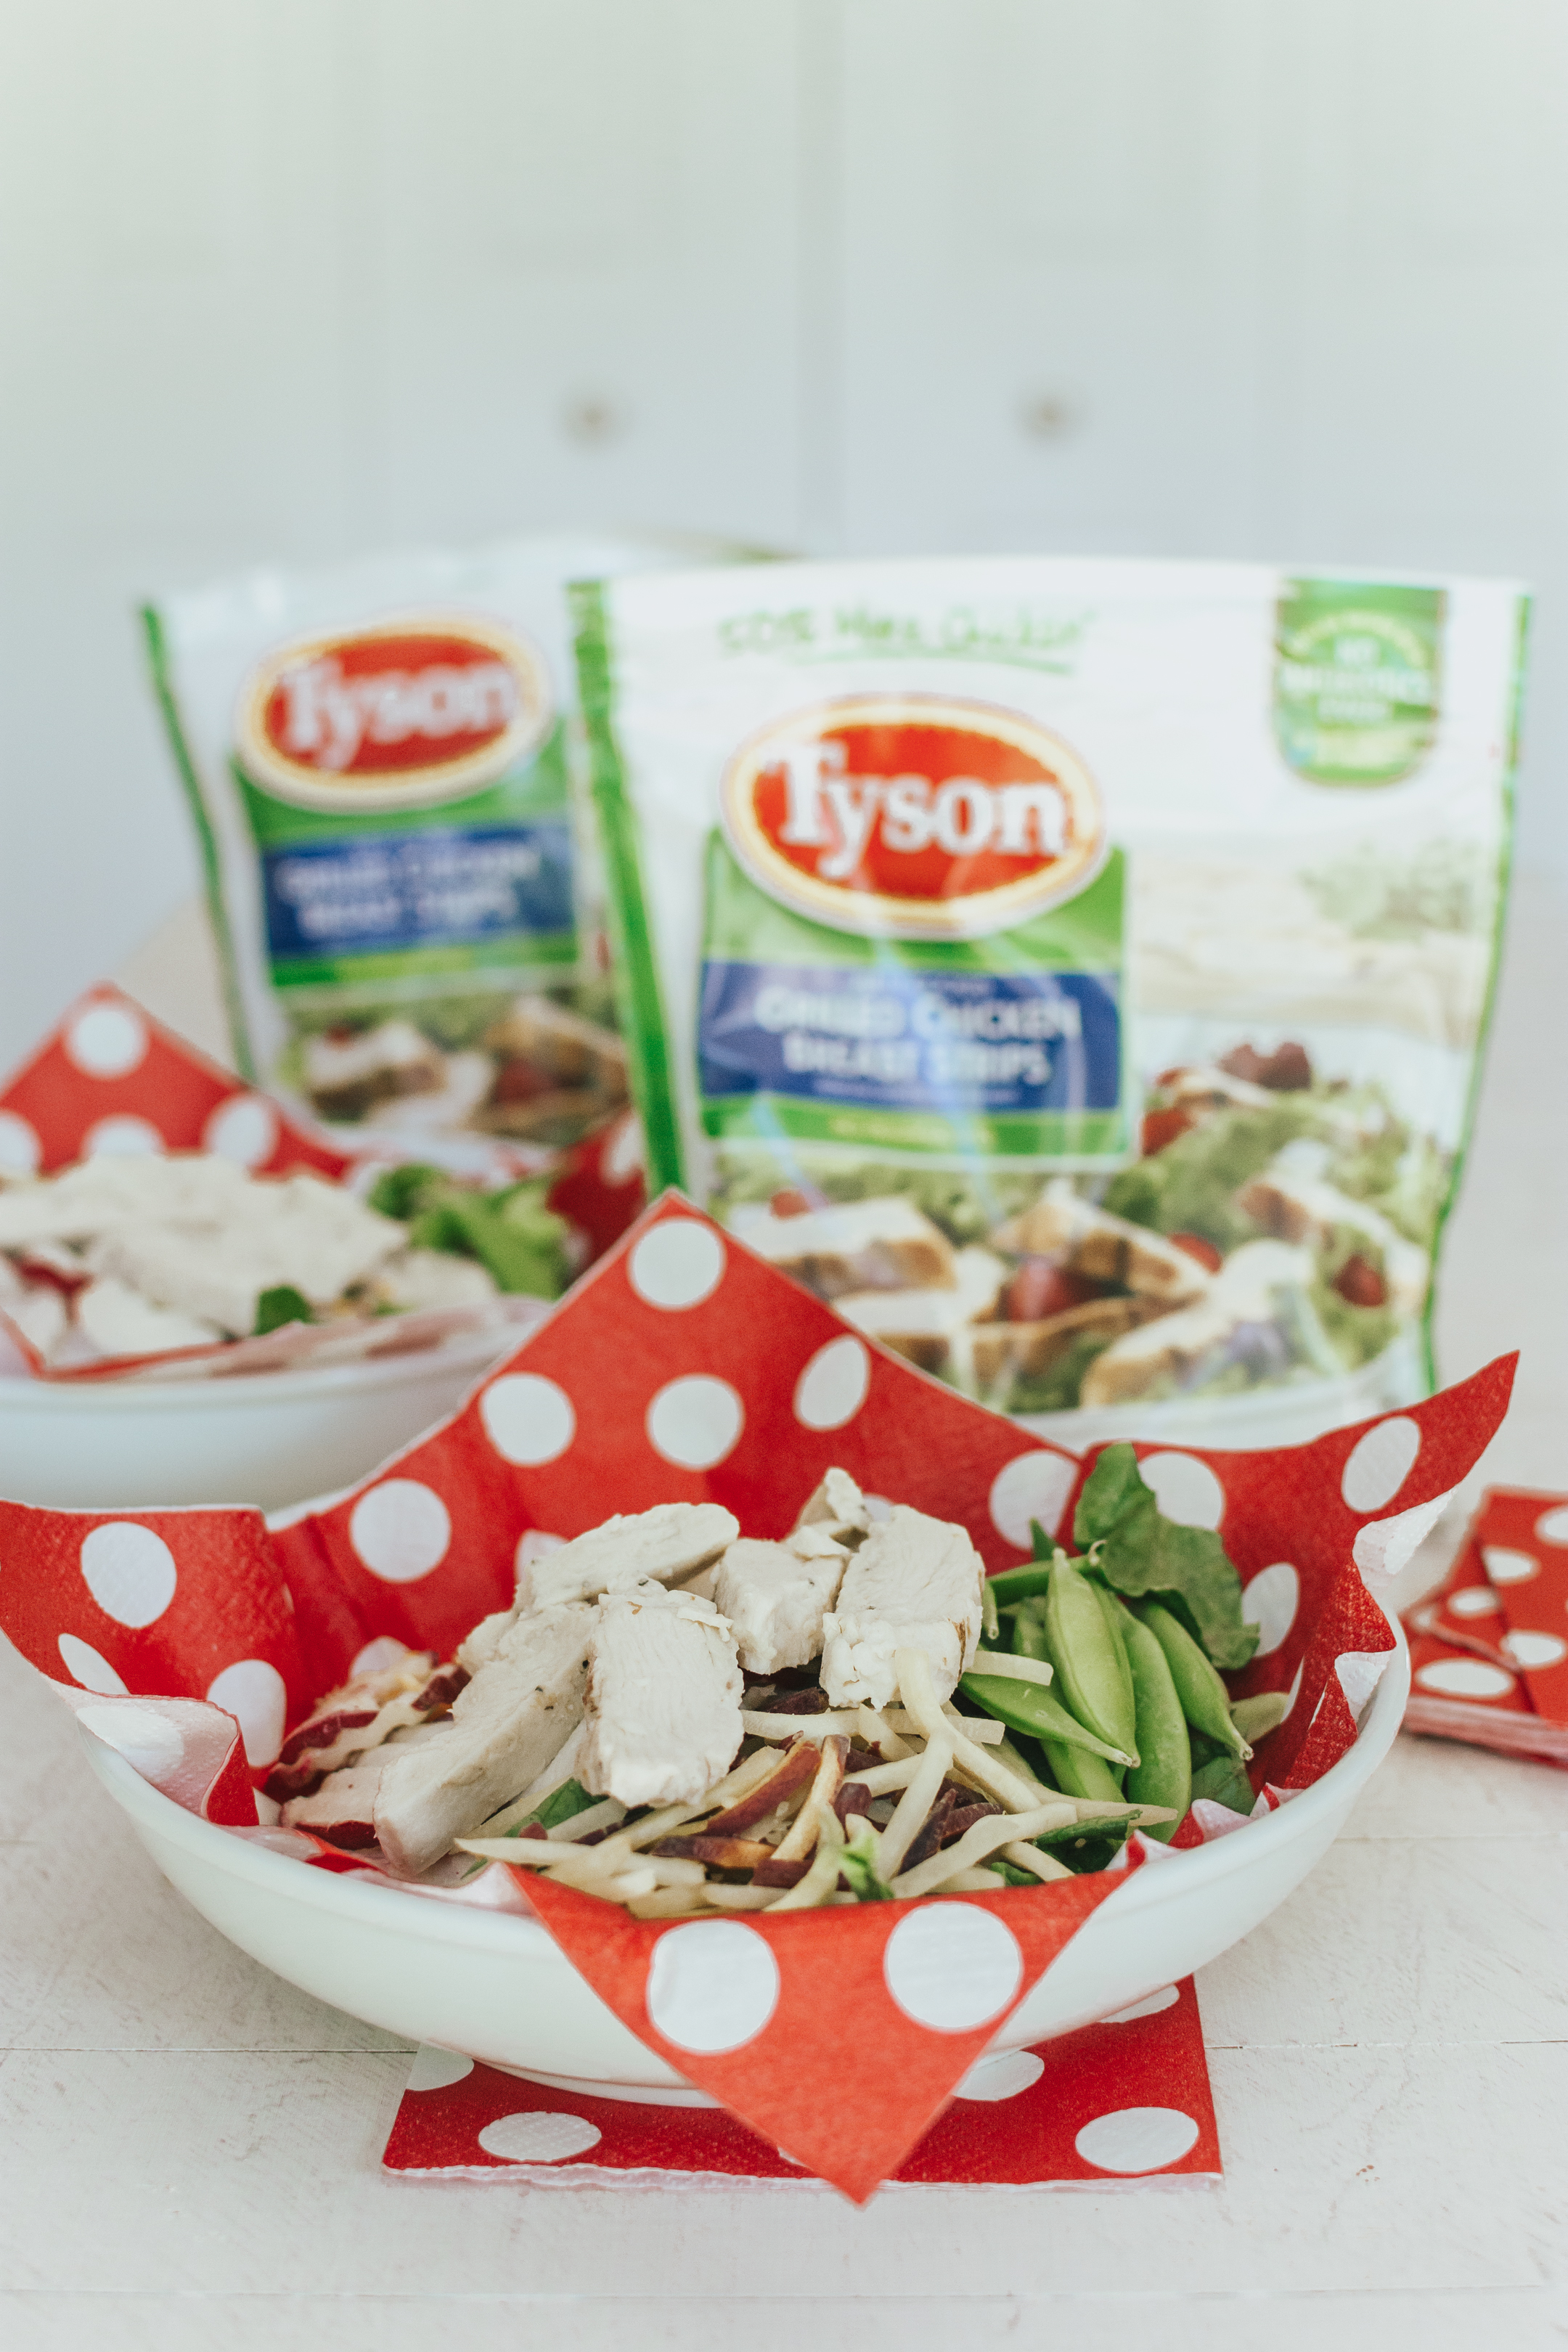 Tyson precooked chicken strips, easy back to school lunches and snacks, easy weeknight meals